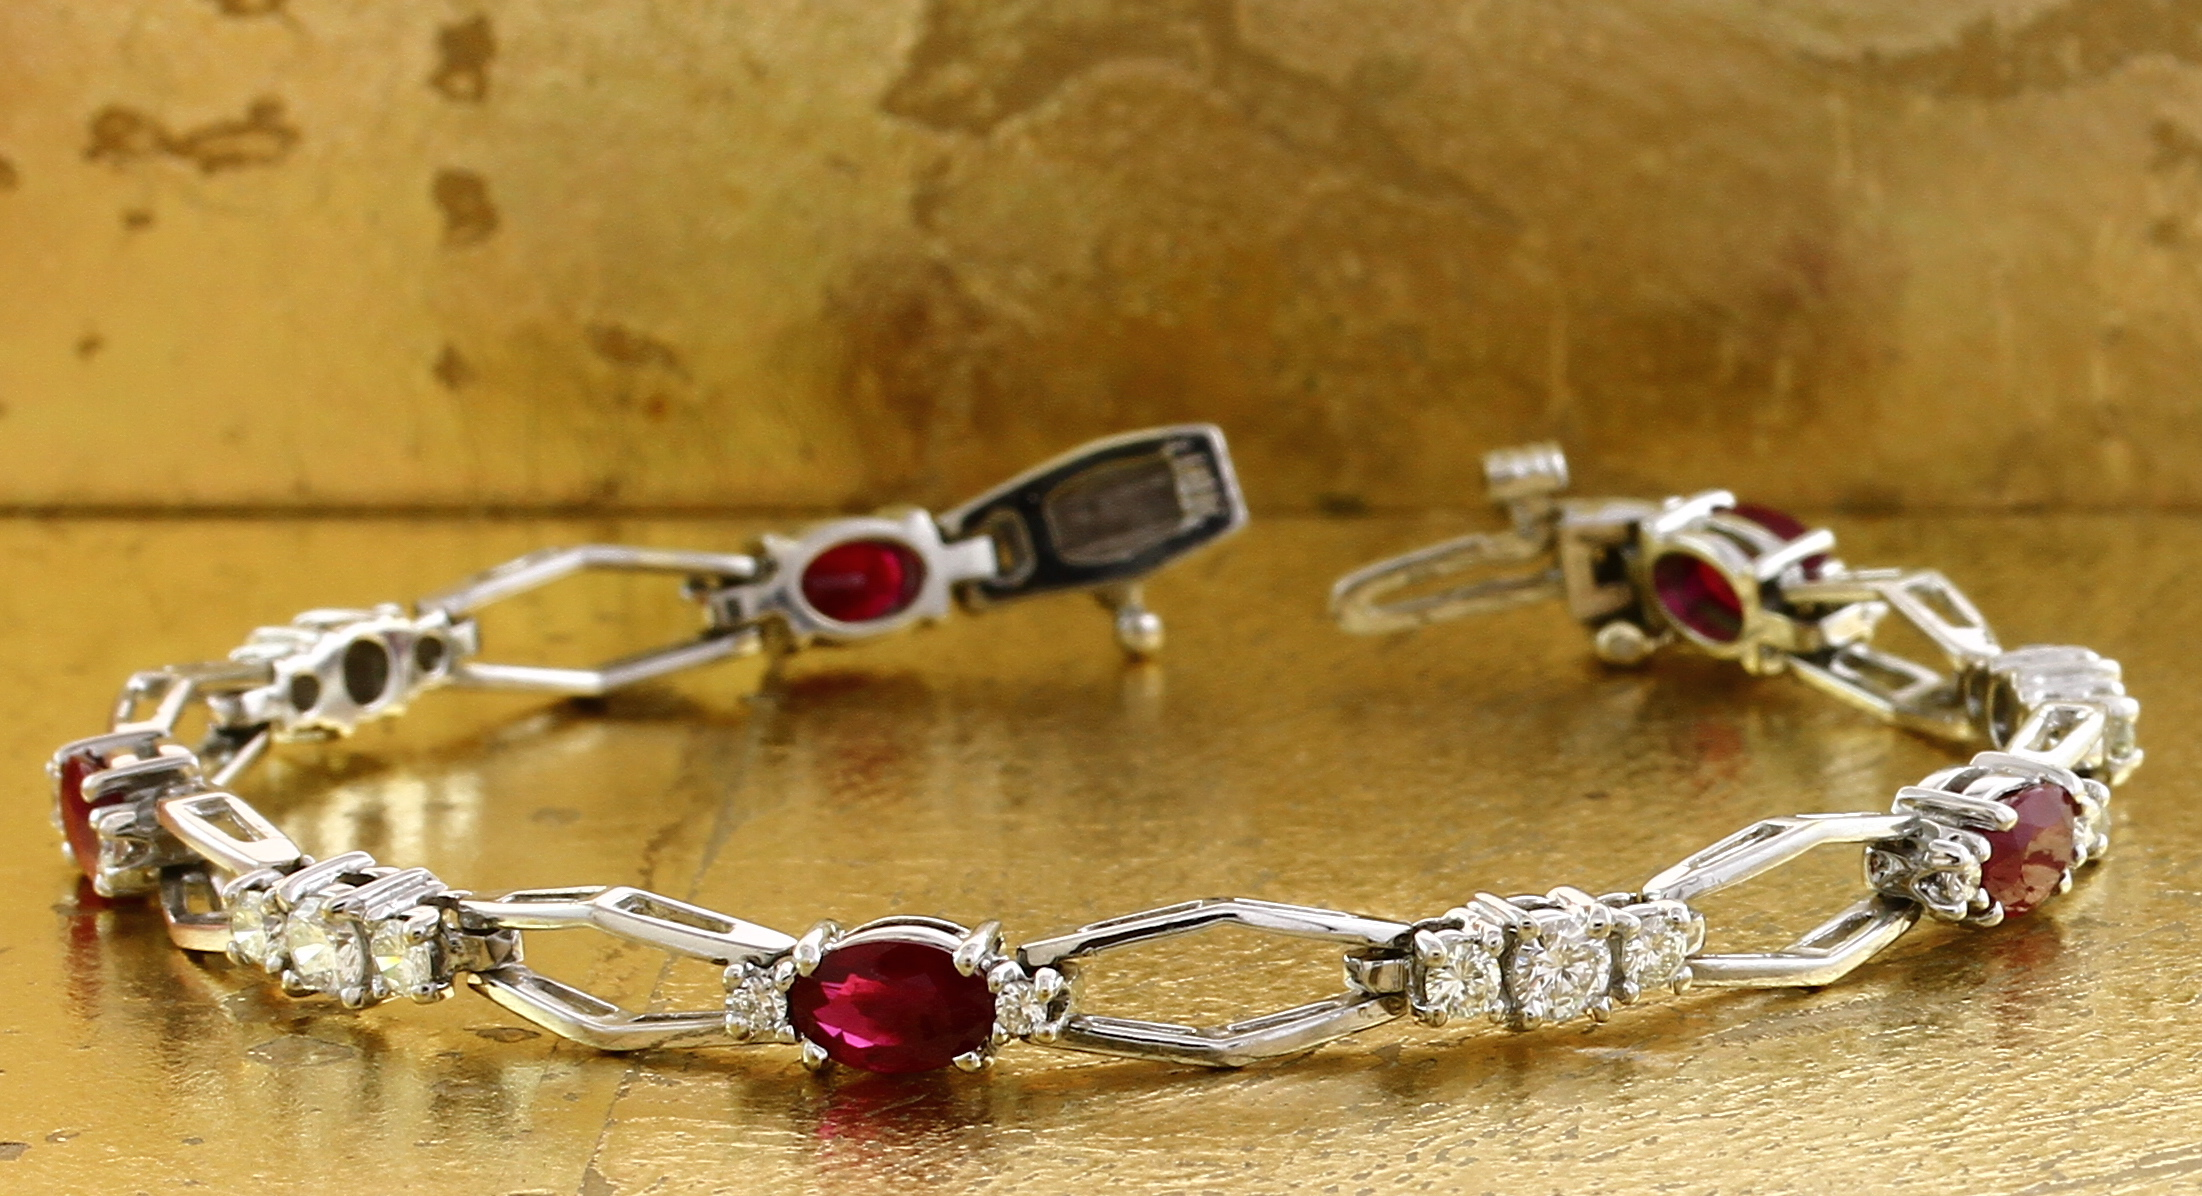 Tennis Bracelet in Oval Rubies And Round Diamonds - Item No: 0010617